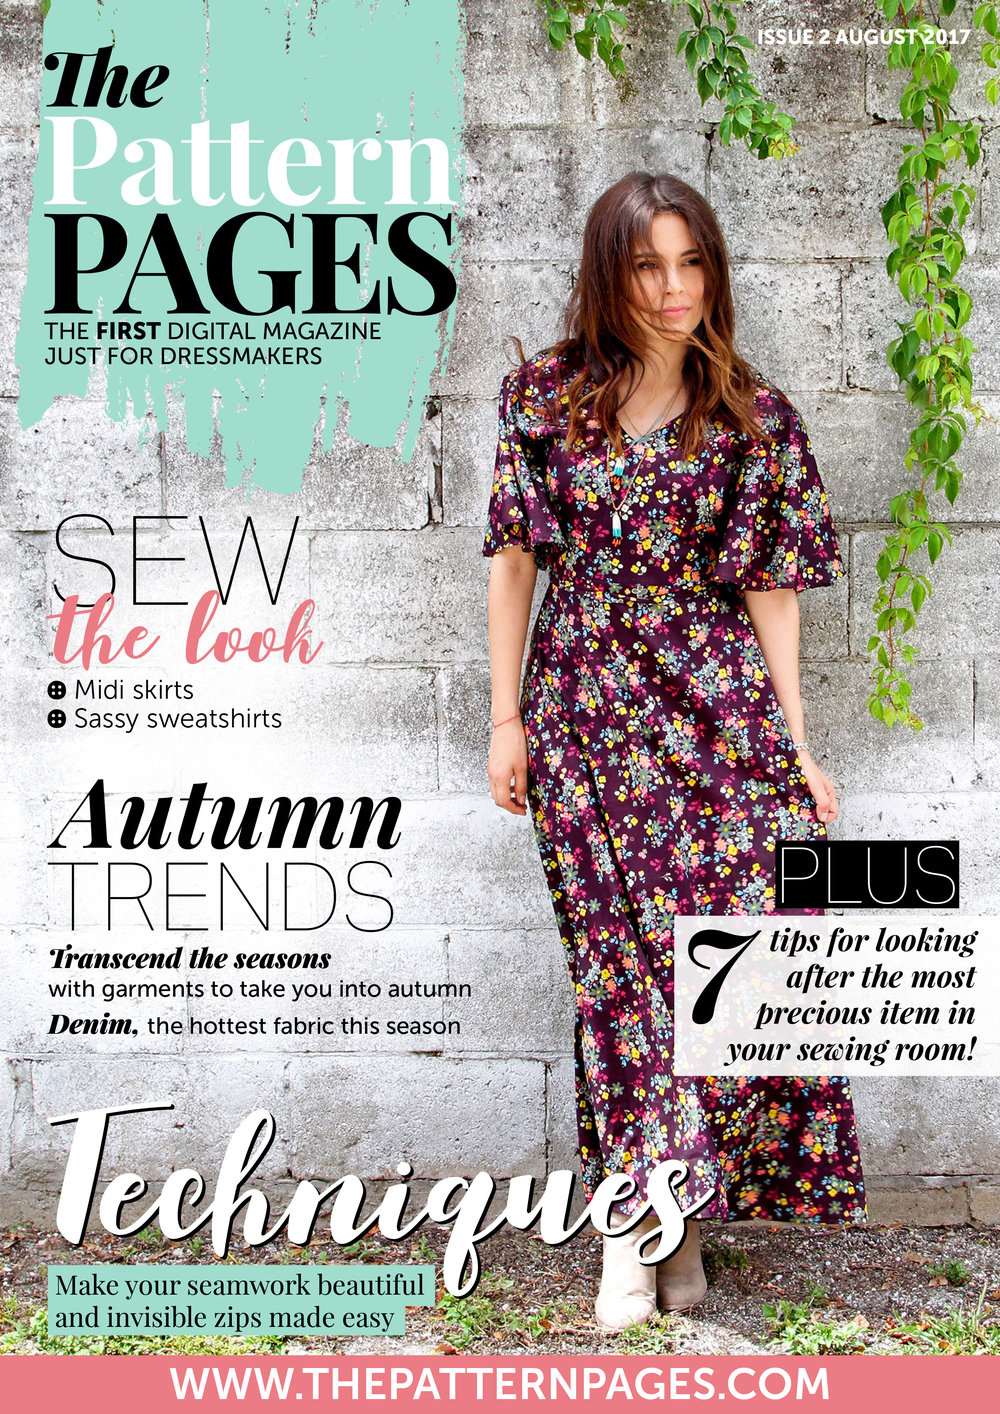 Autumn - ISSUE 2 - WHAT'S INSIDE?Autumn edit - the best patterns for between the season's fashionMakers in the spotlight - we catch up with Sew La Di Da Vintage and Named Clothing60-minute make - we make a fab hairwrap and how to up-cycle a top with a fashionable fringed trimAND.... much much more, download and sign up now for issue 3 onwards!! *Magazine designed by our fabulous designer Sarah.